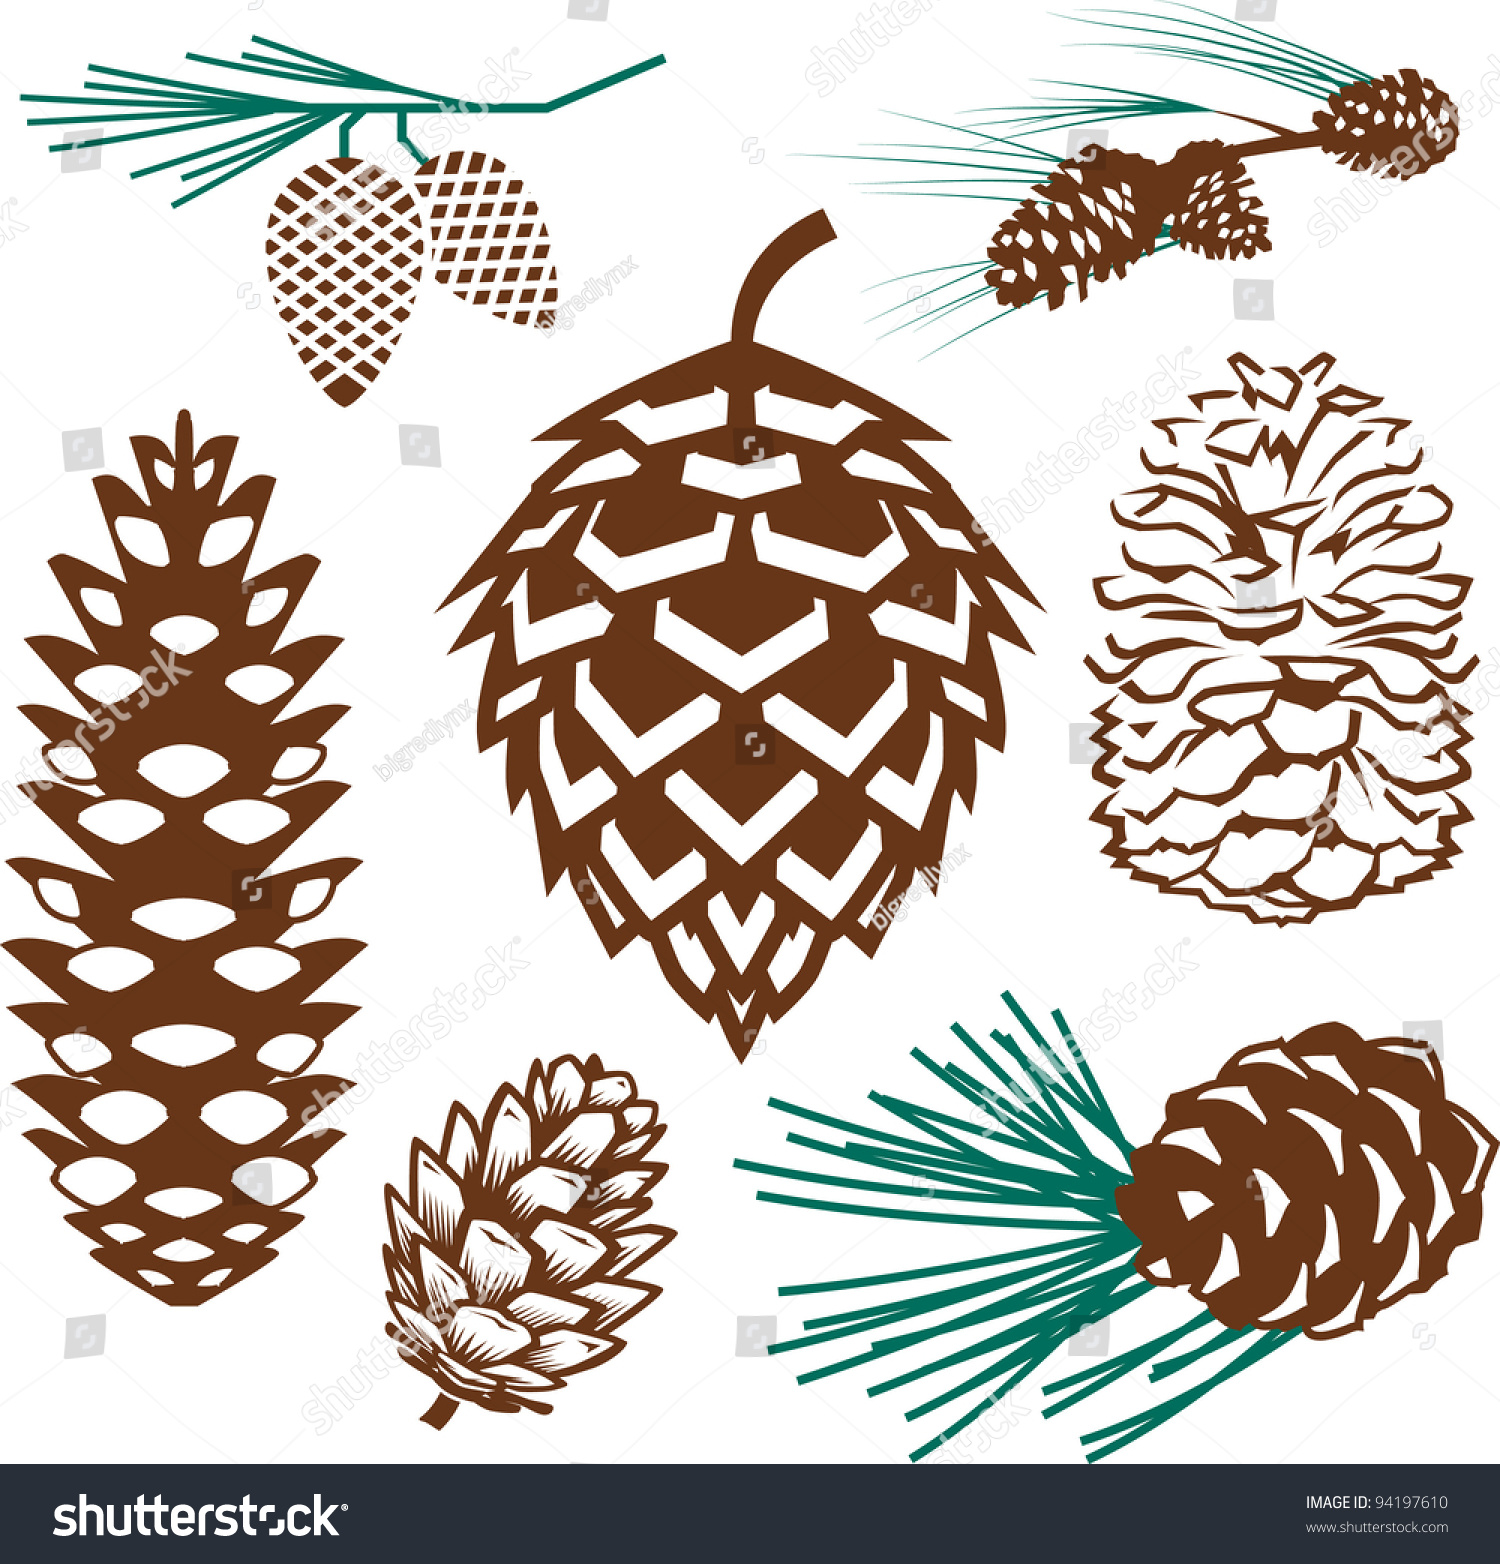 pinecone collection stock vector 94197610 shutterstock